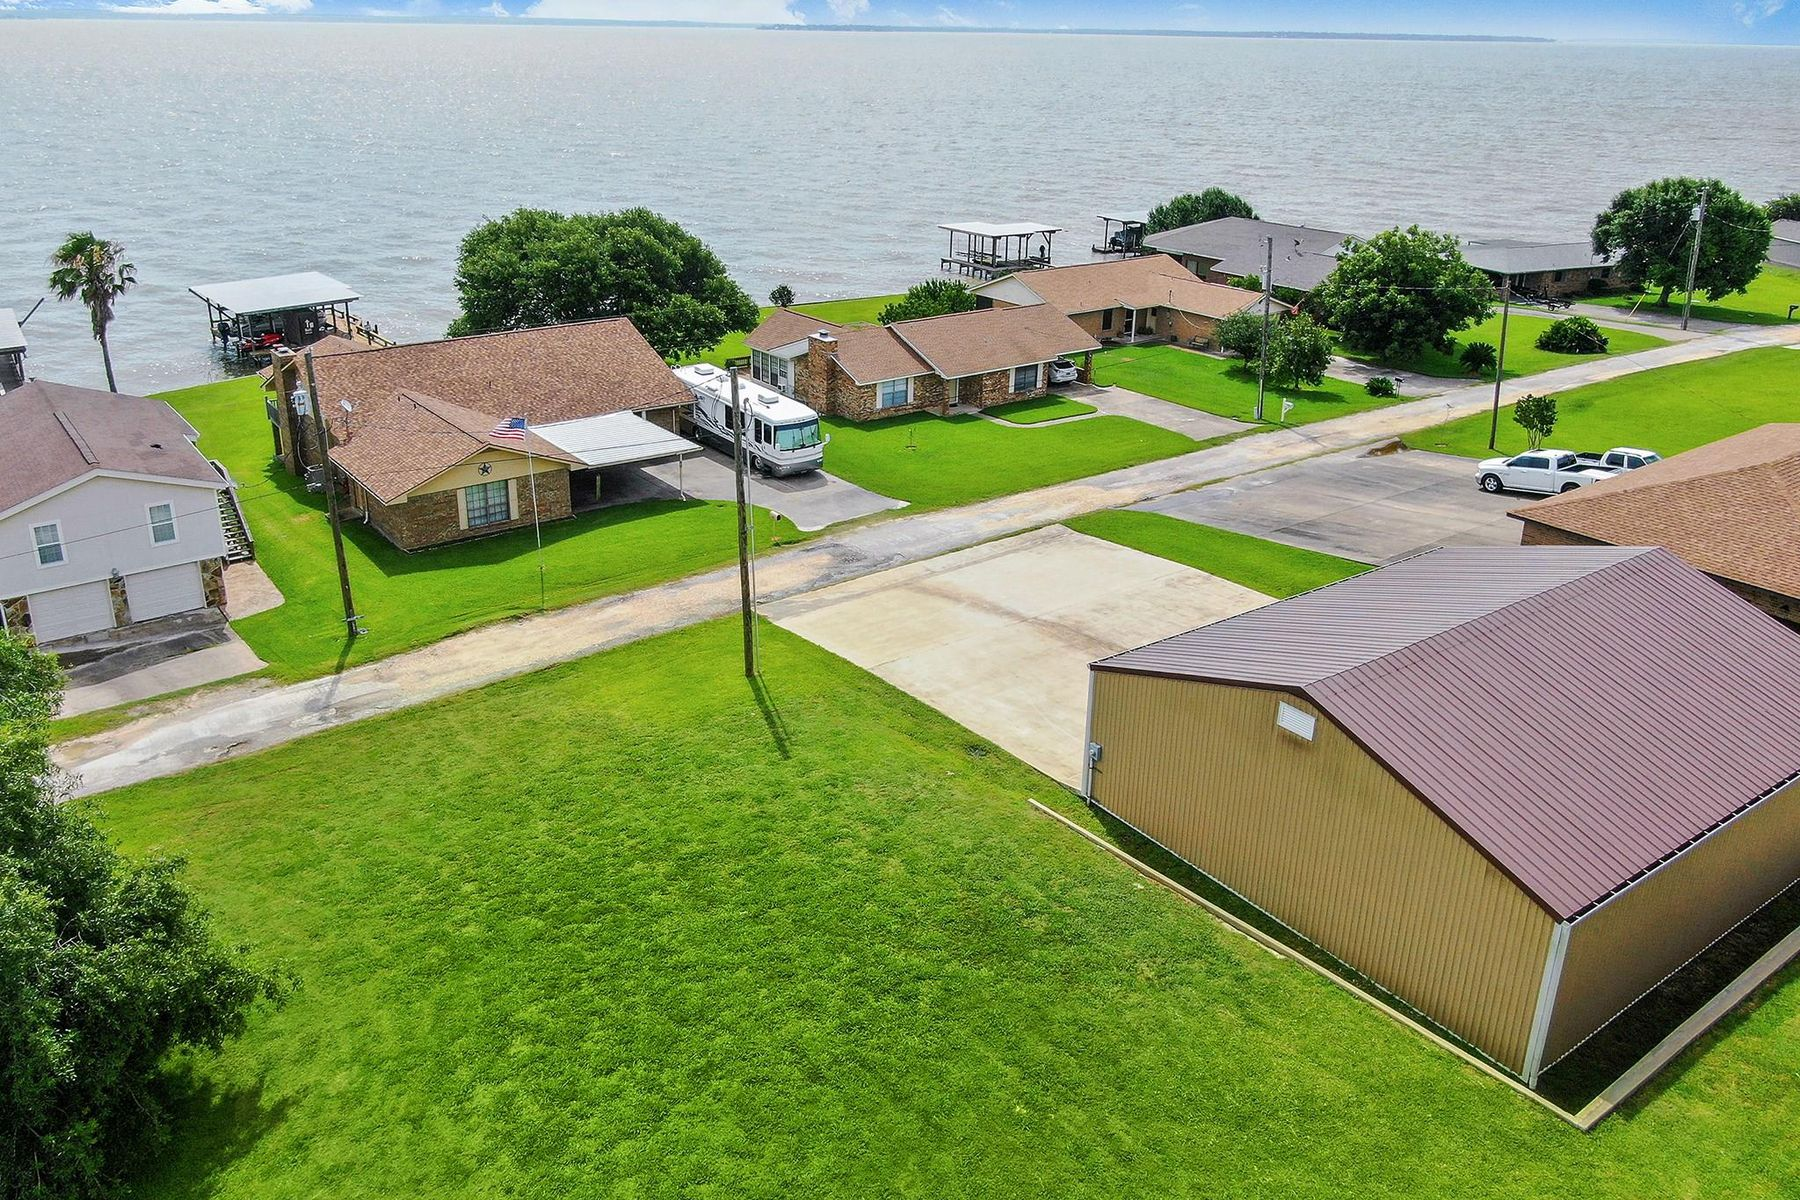 Land for Active at 140 Fishermans Bend Drive Pointblank, Texas 77364 United States